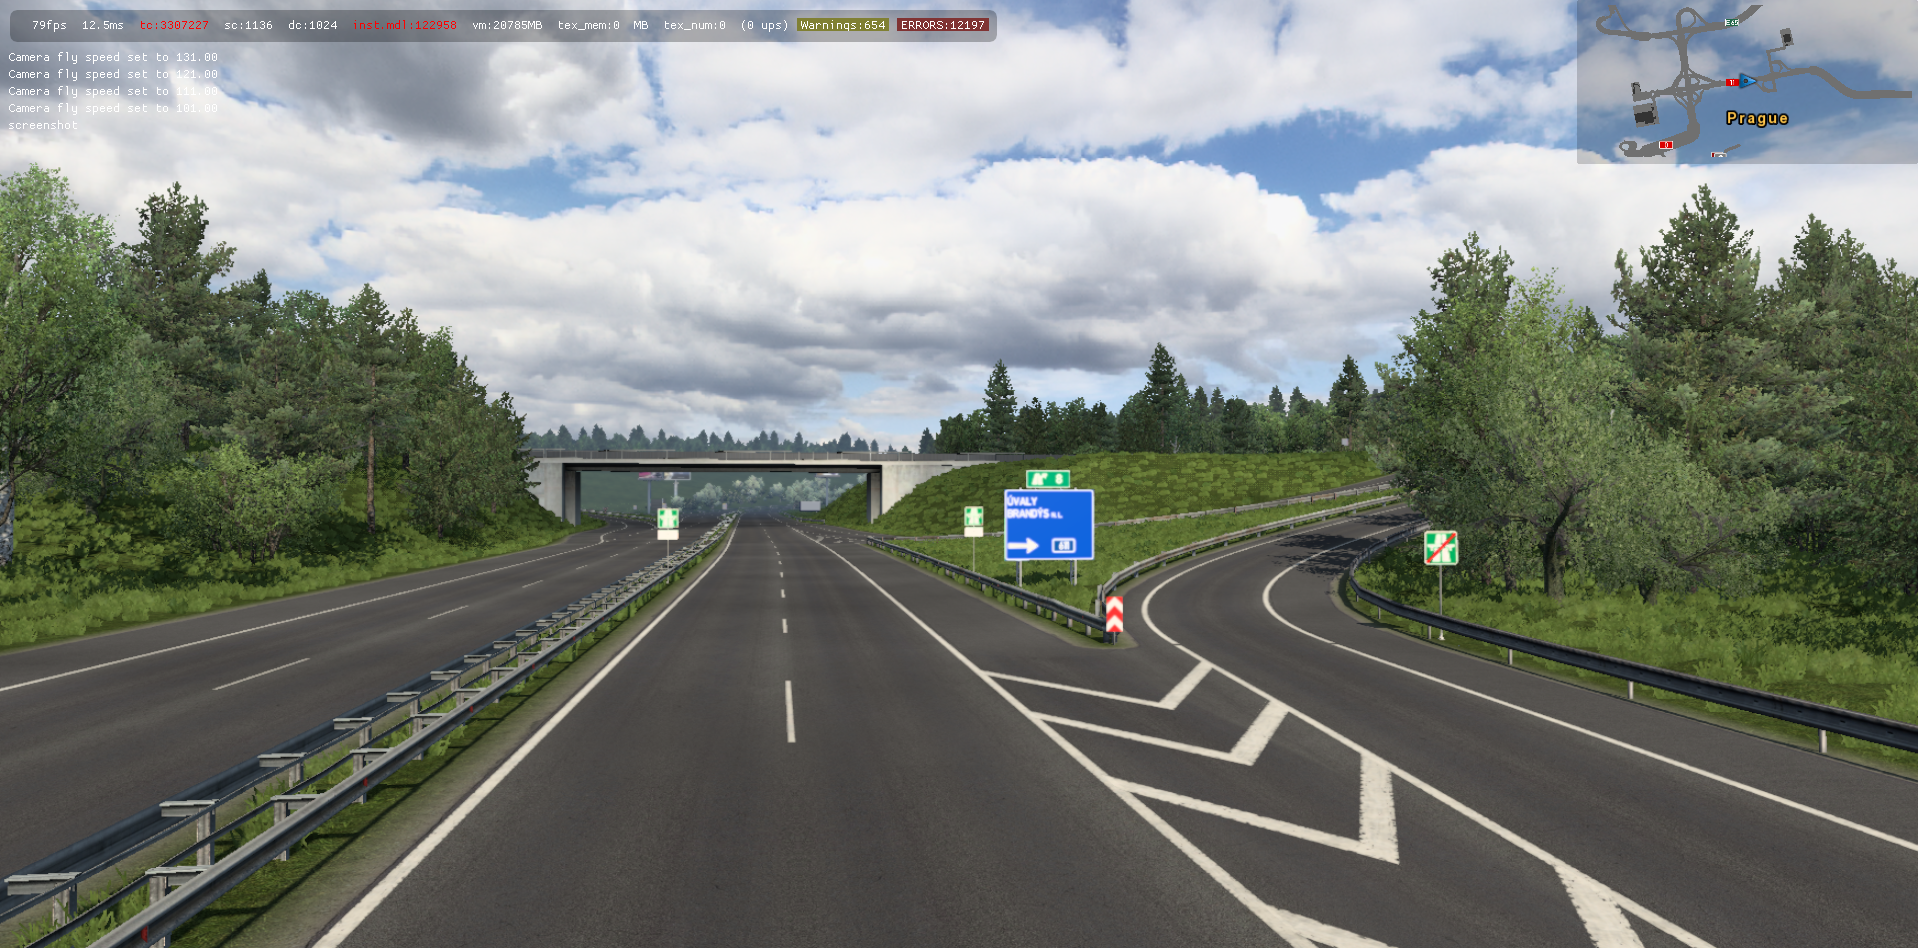 ets2_20210531_204020_00.png